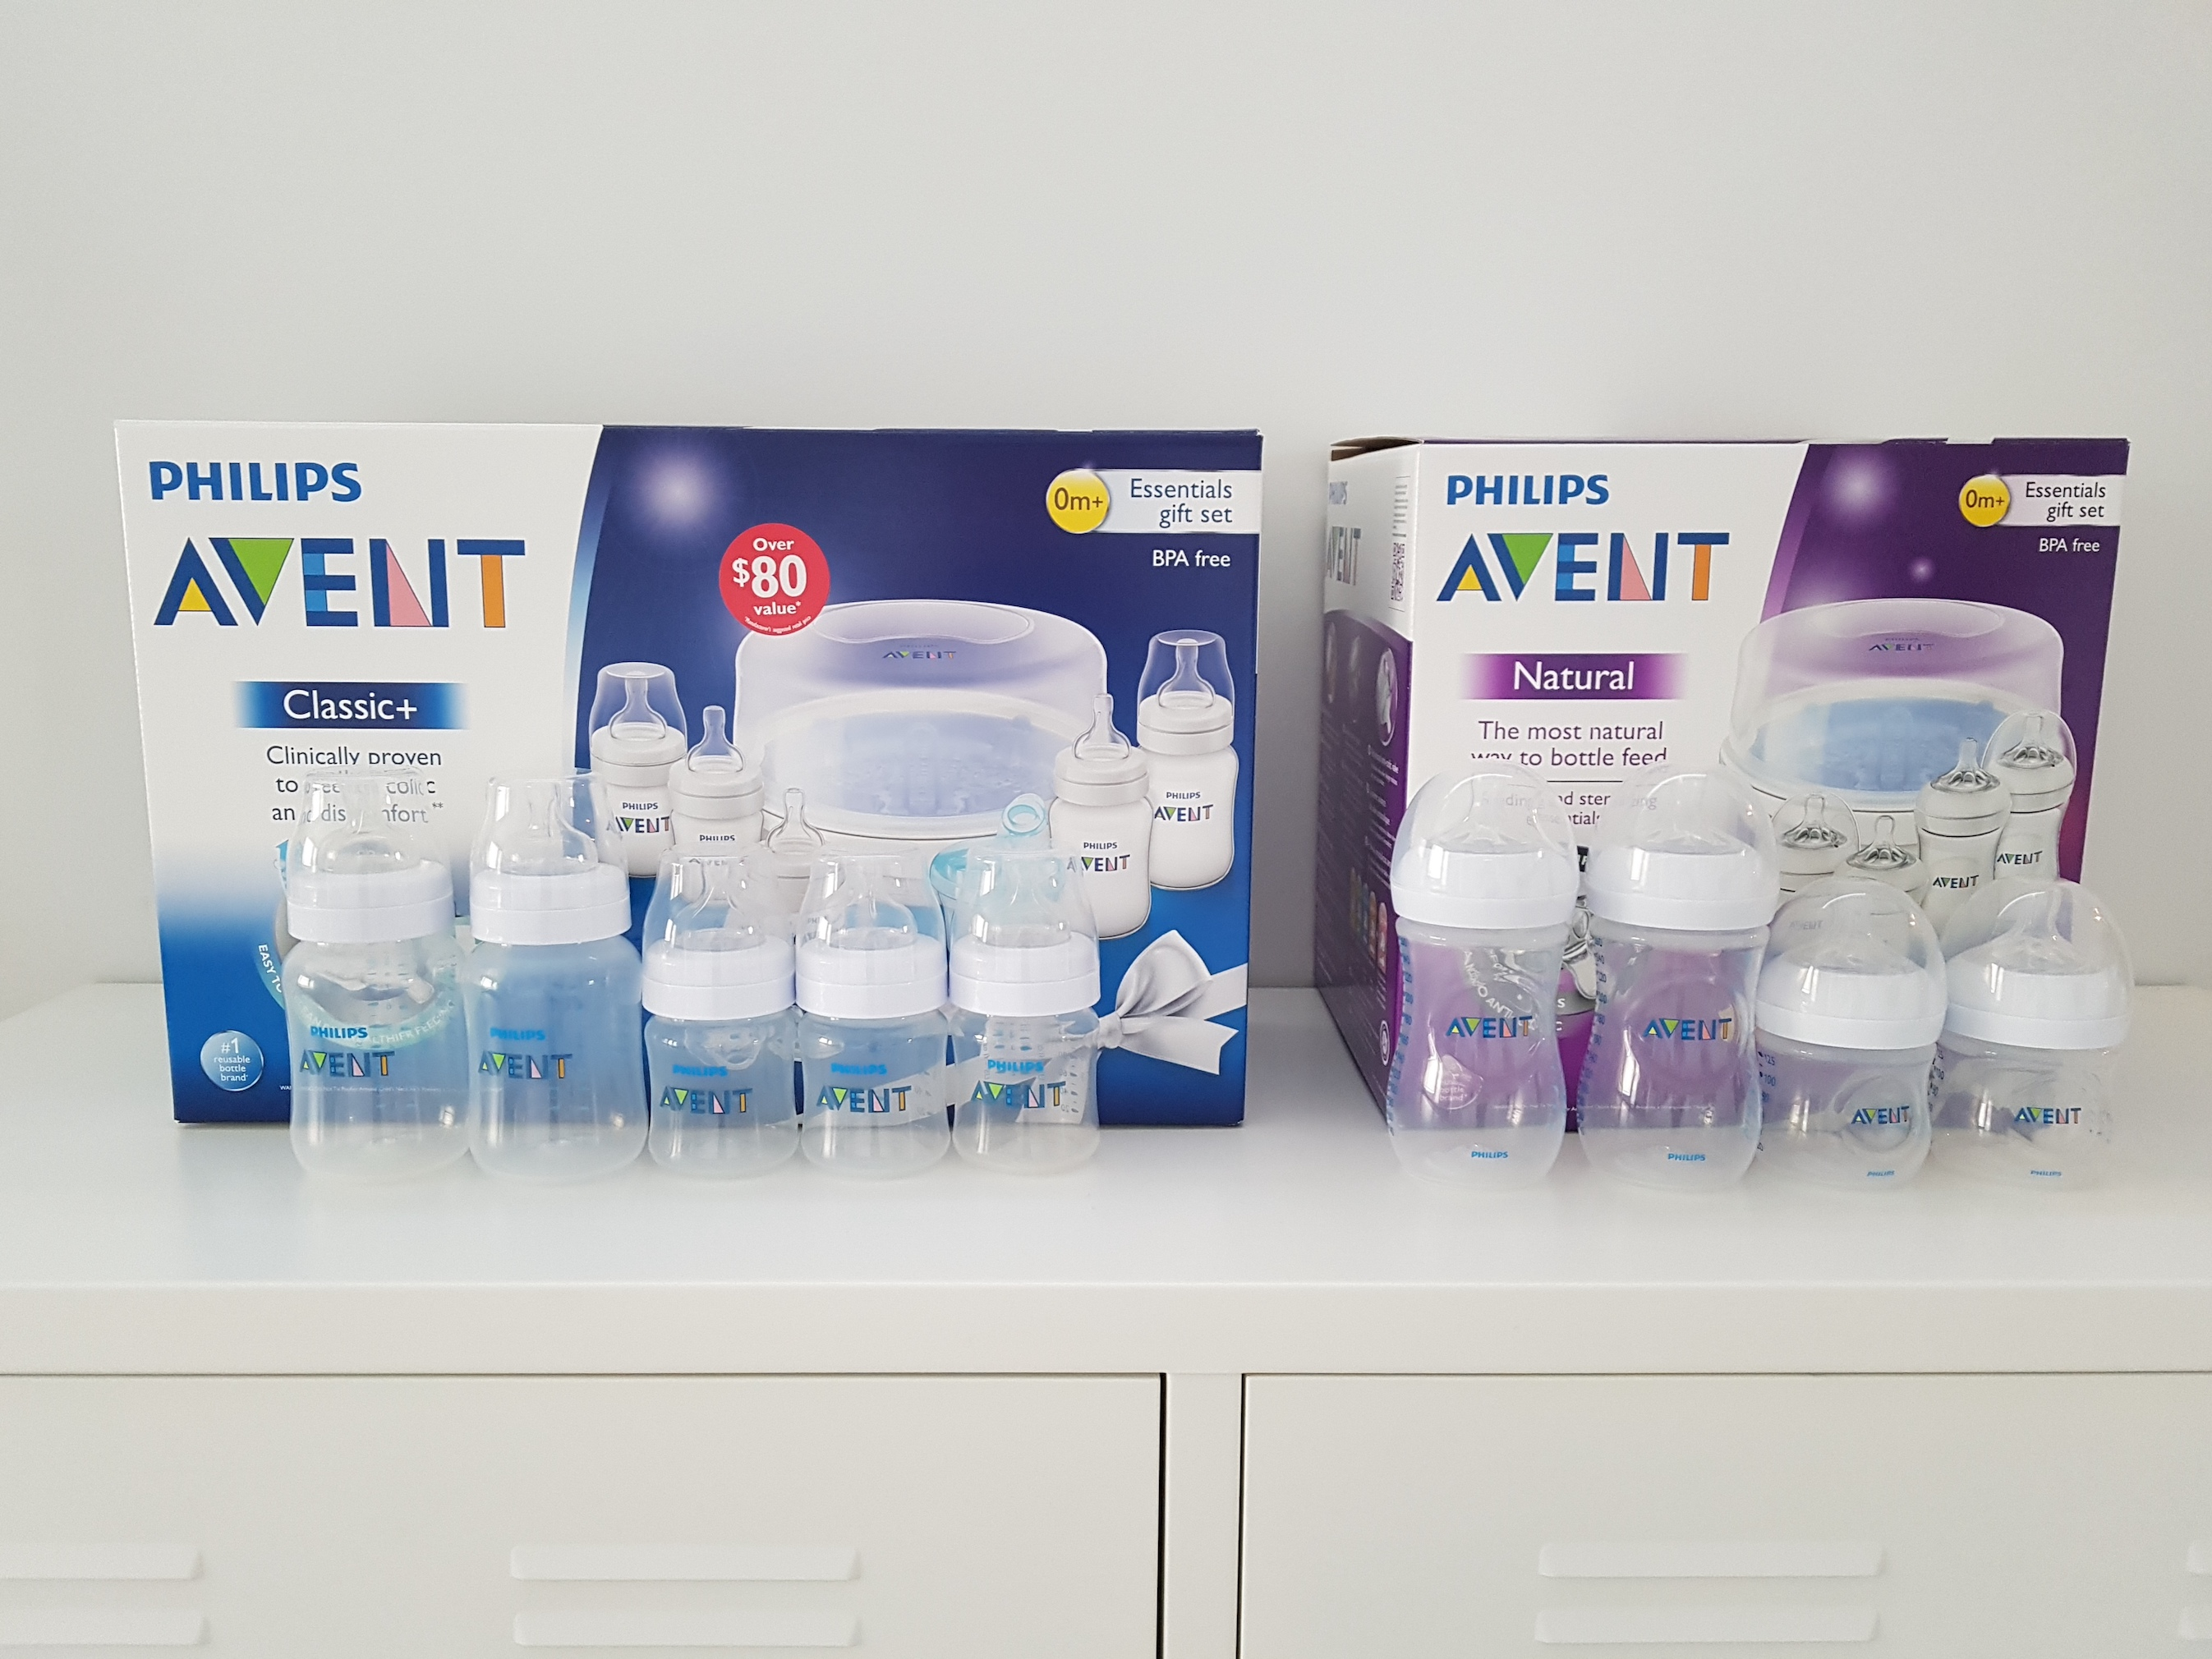 philips_avent_bby_sets